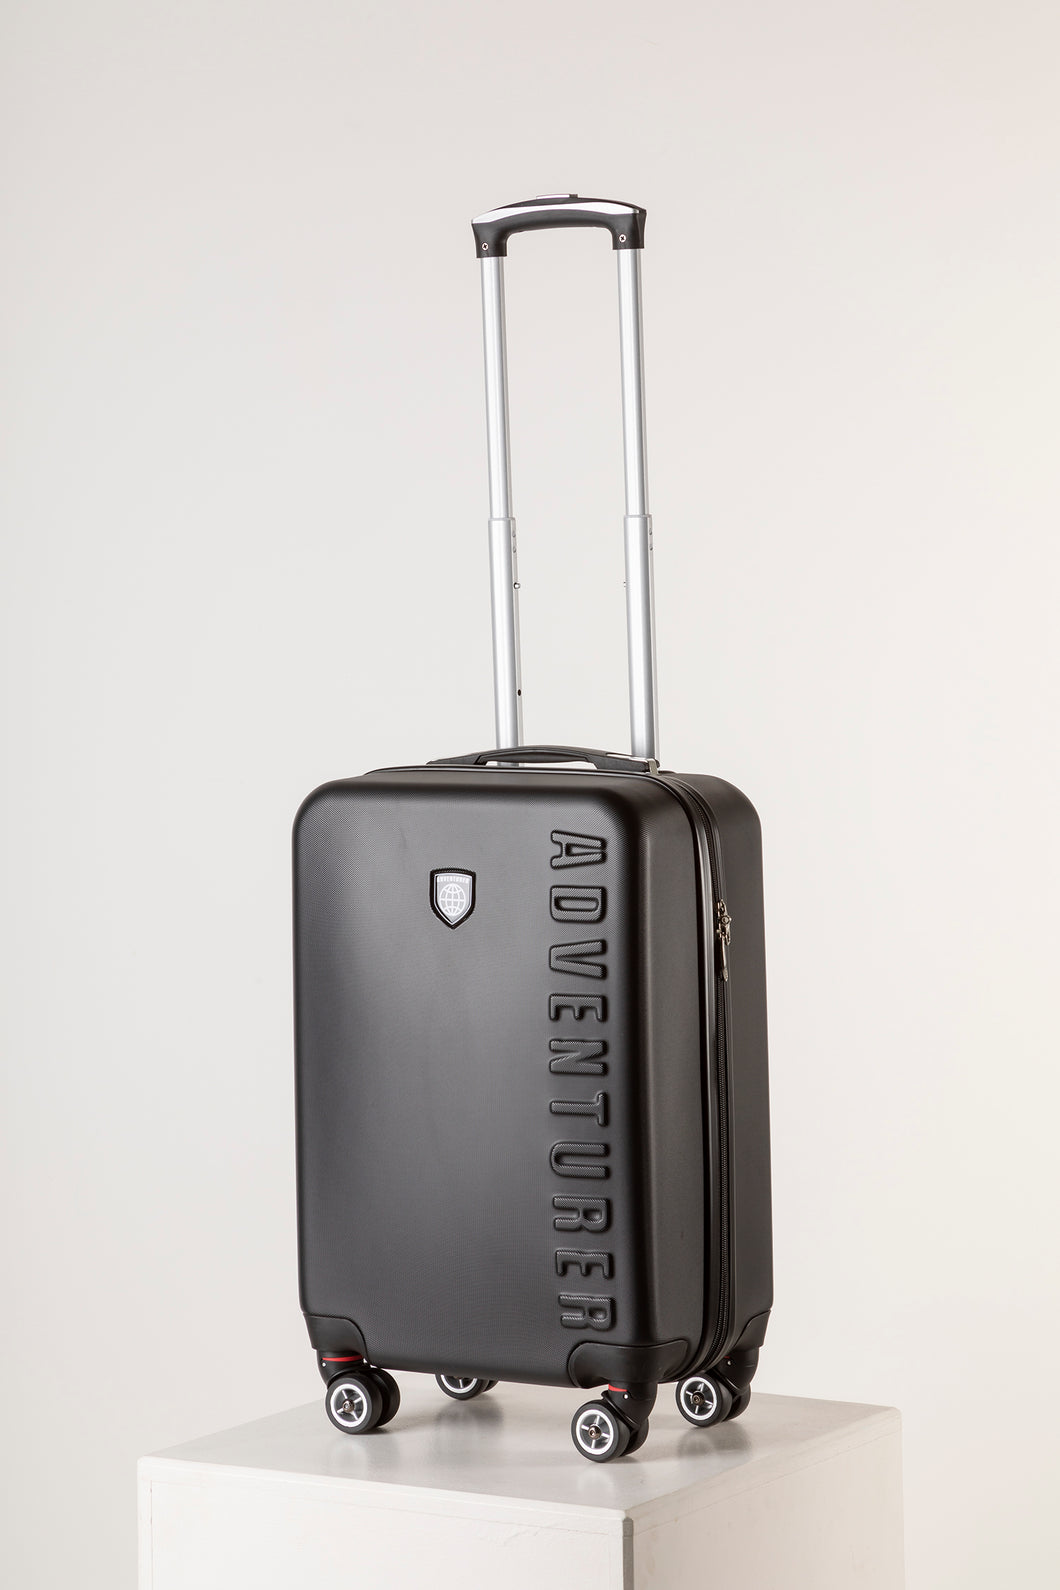 Adventurer Carry On Luggage